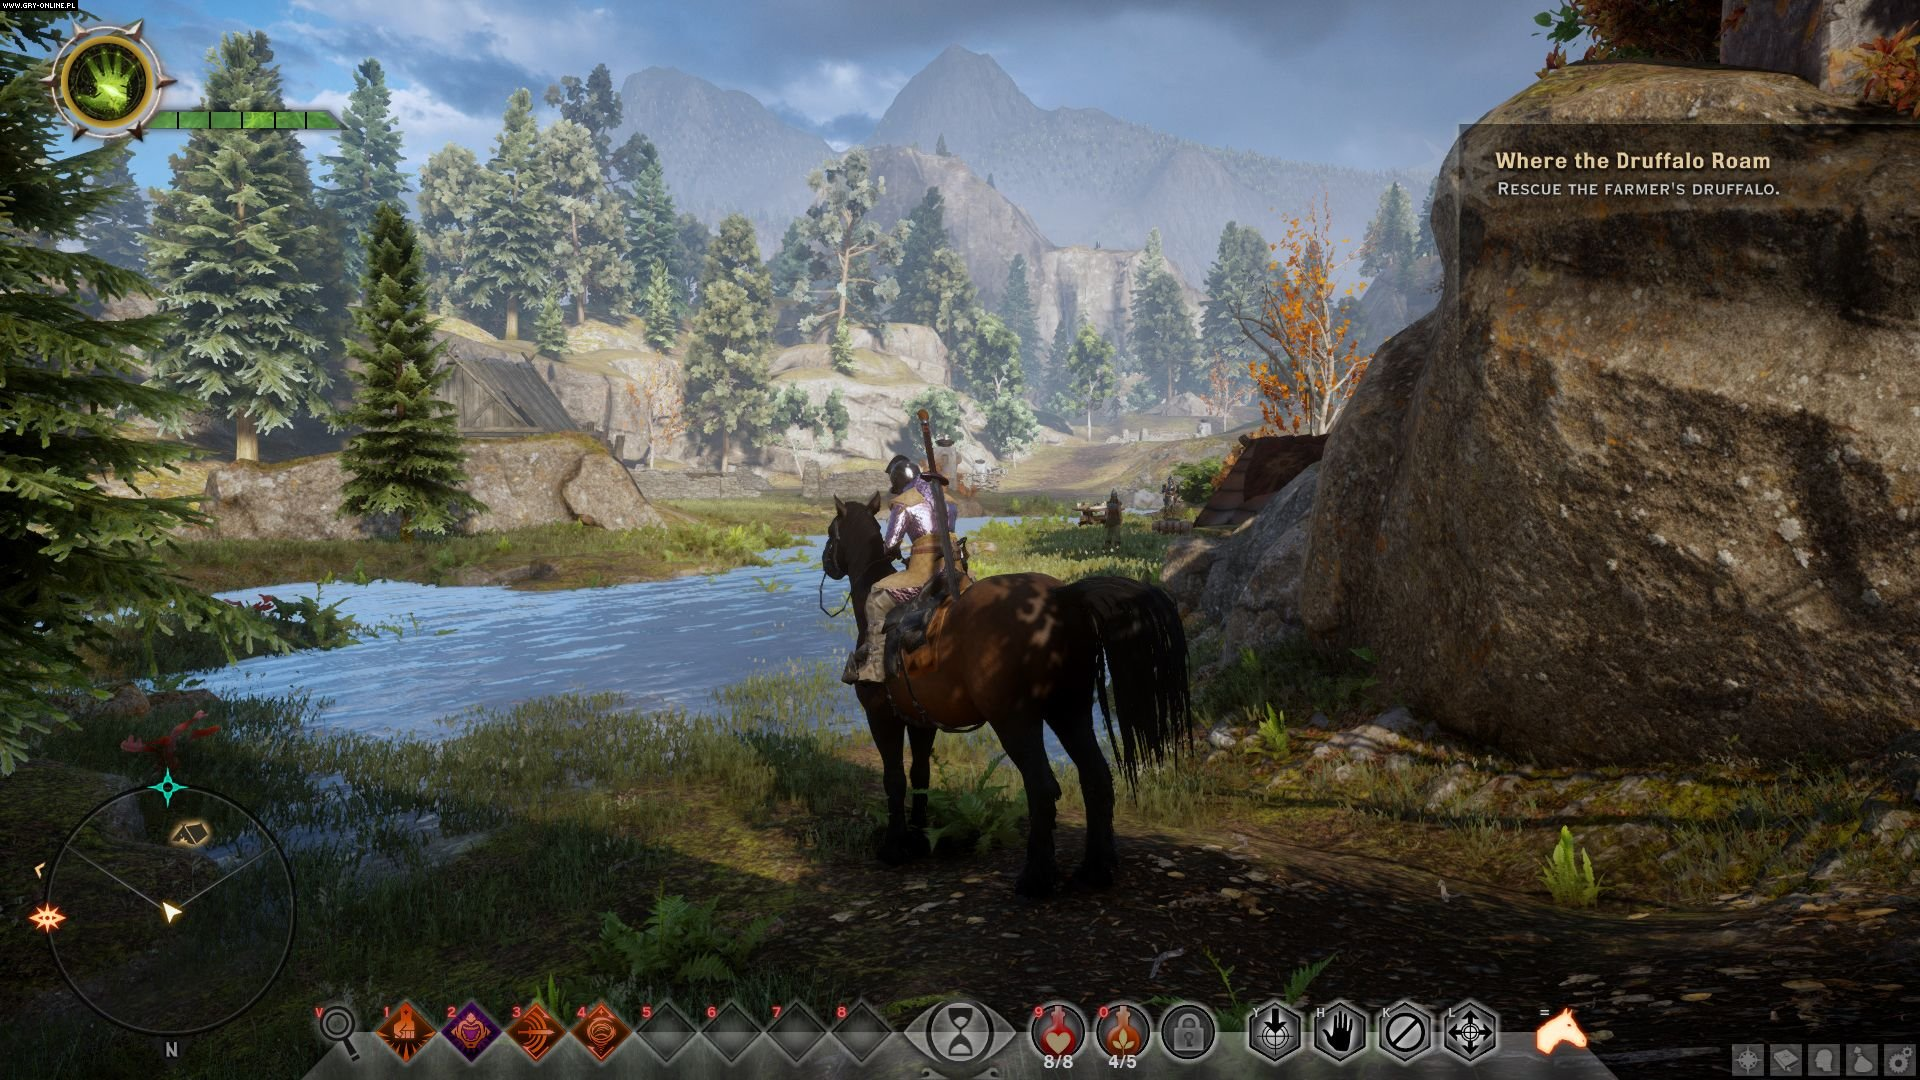 Dragon Age: Inquisition PC, X360, PS3 Games Image 3/225, BioWare Corporation, Electronic Arts Inc.